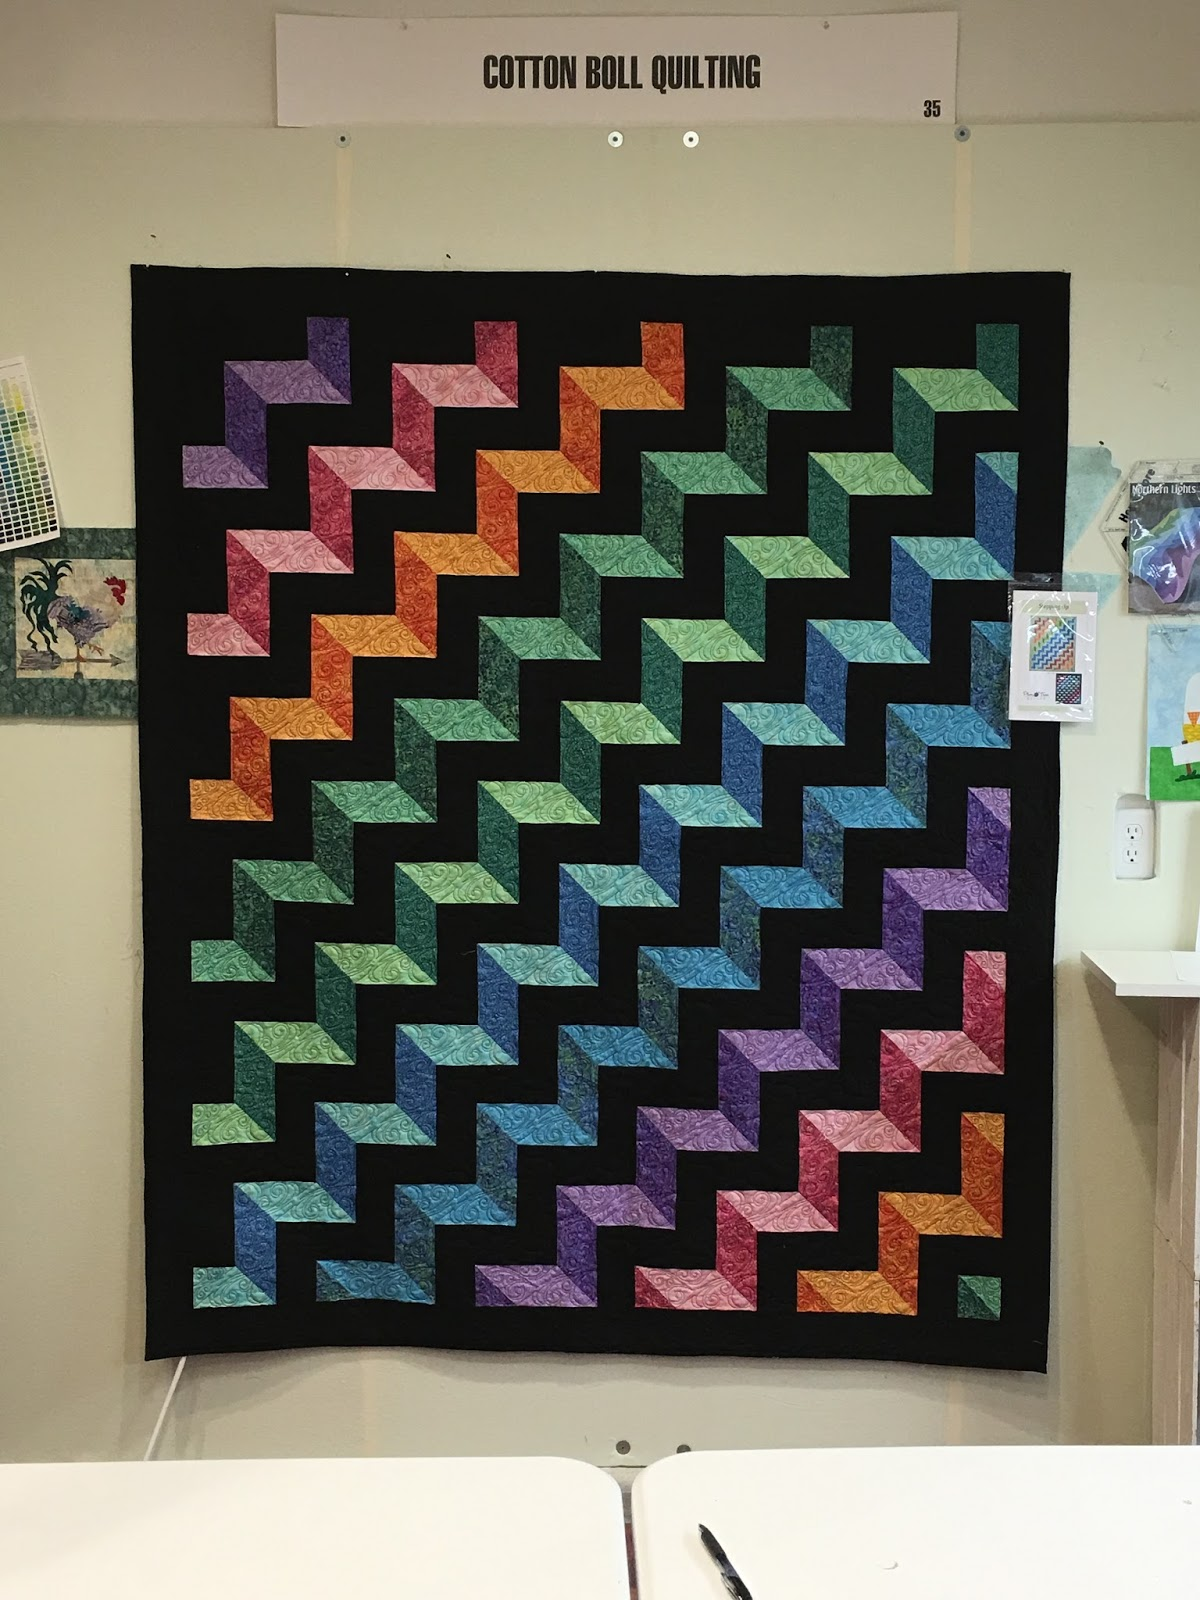 Cotton Boll Quilting The Quilting Queen Online